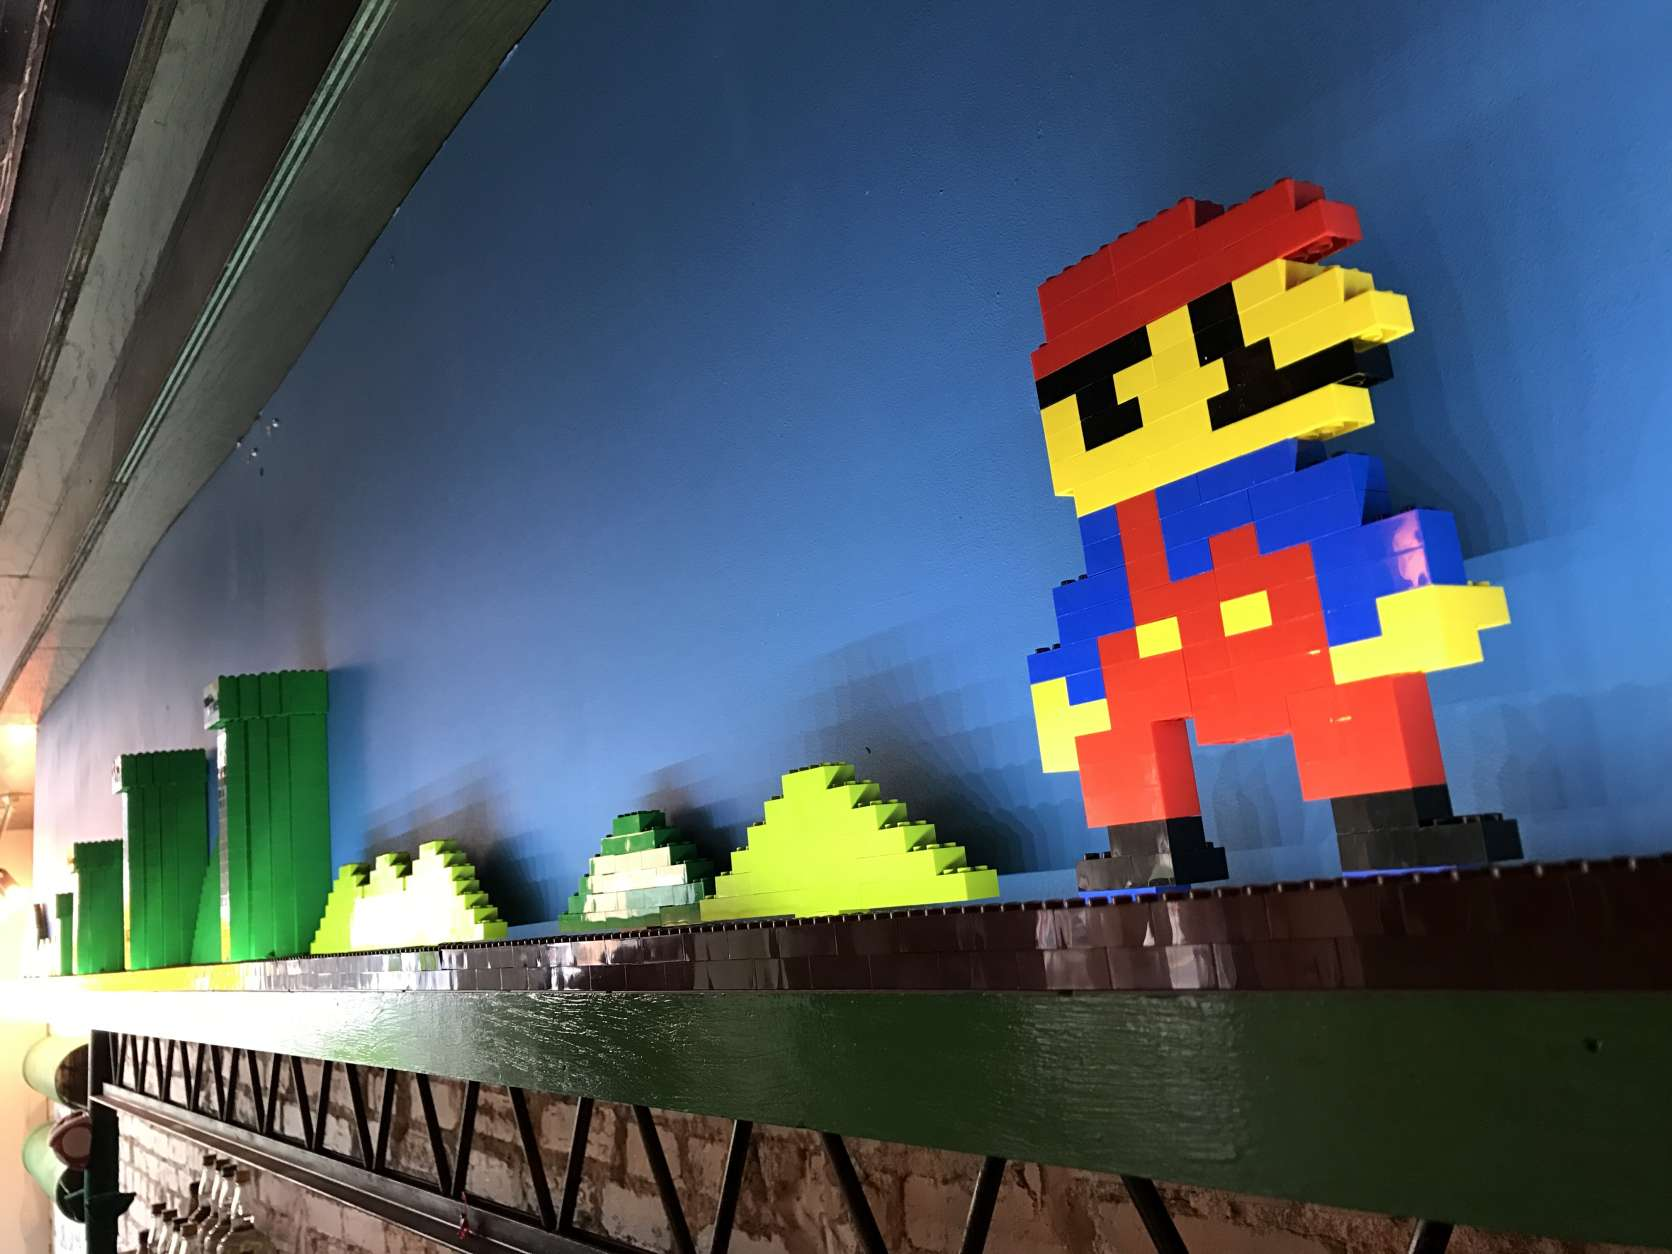 Behind the Mario bar, staff created a Lego installation, further reminding visitors of their childhood. (WTOP/Megan Cloherty)